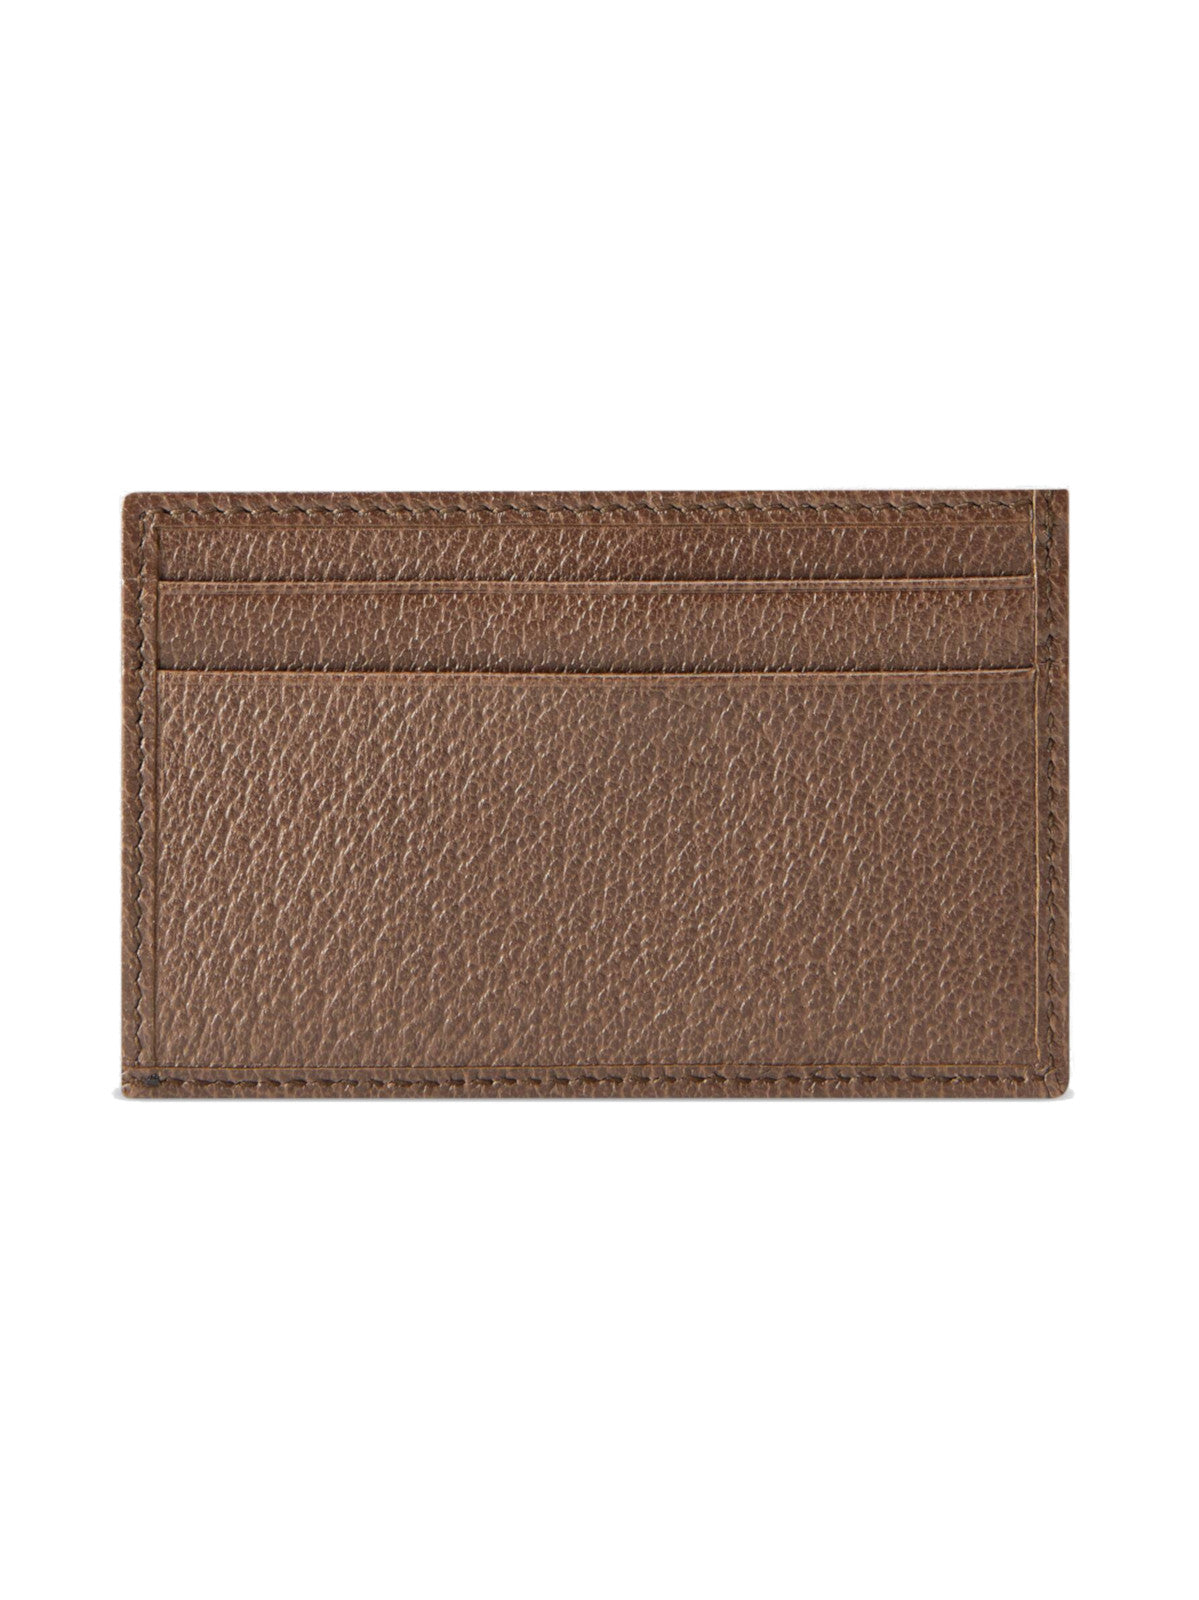 Ophidia GG card case